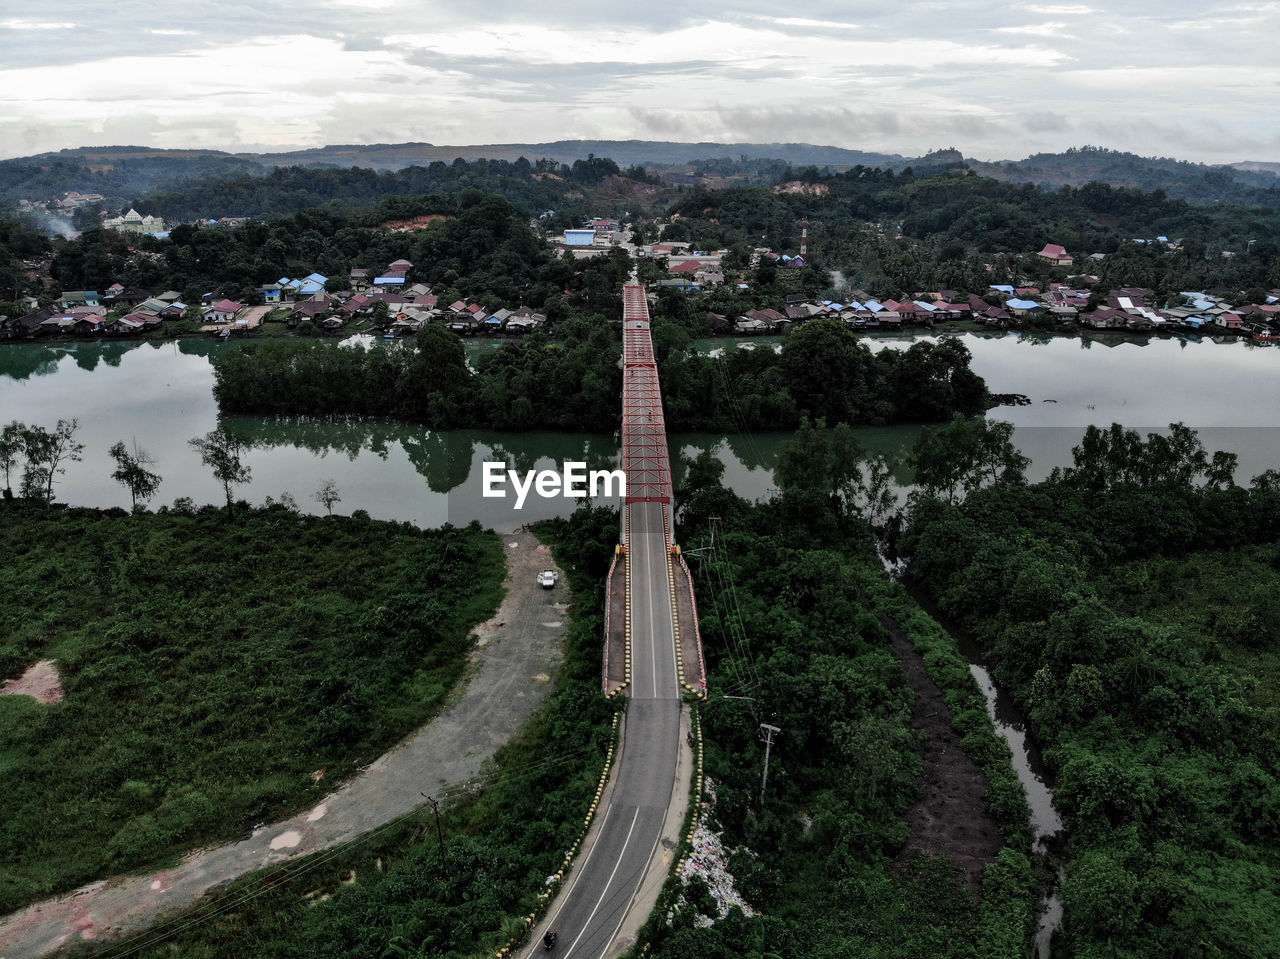 HIGH ANGLE VIEW OF ROAD BY TREES IN CITY